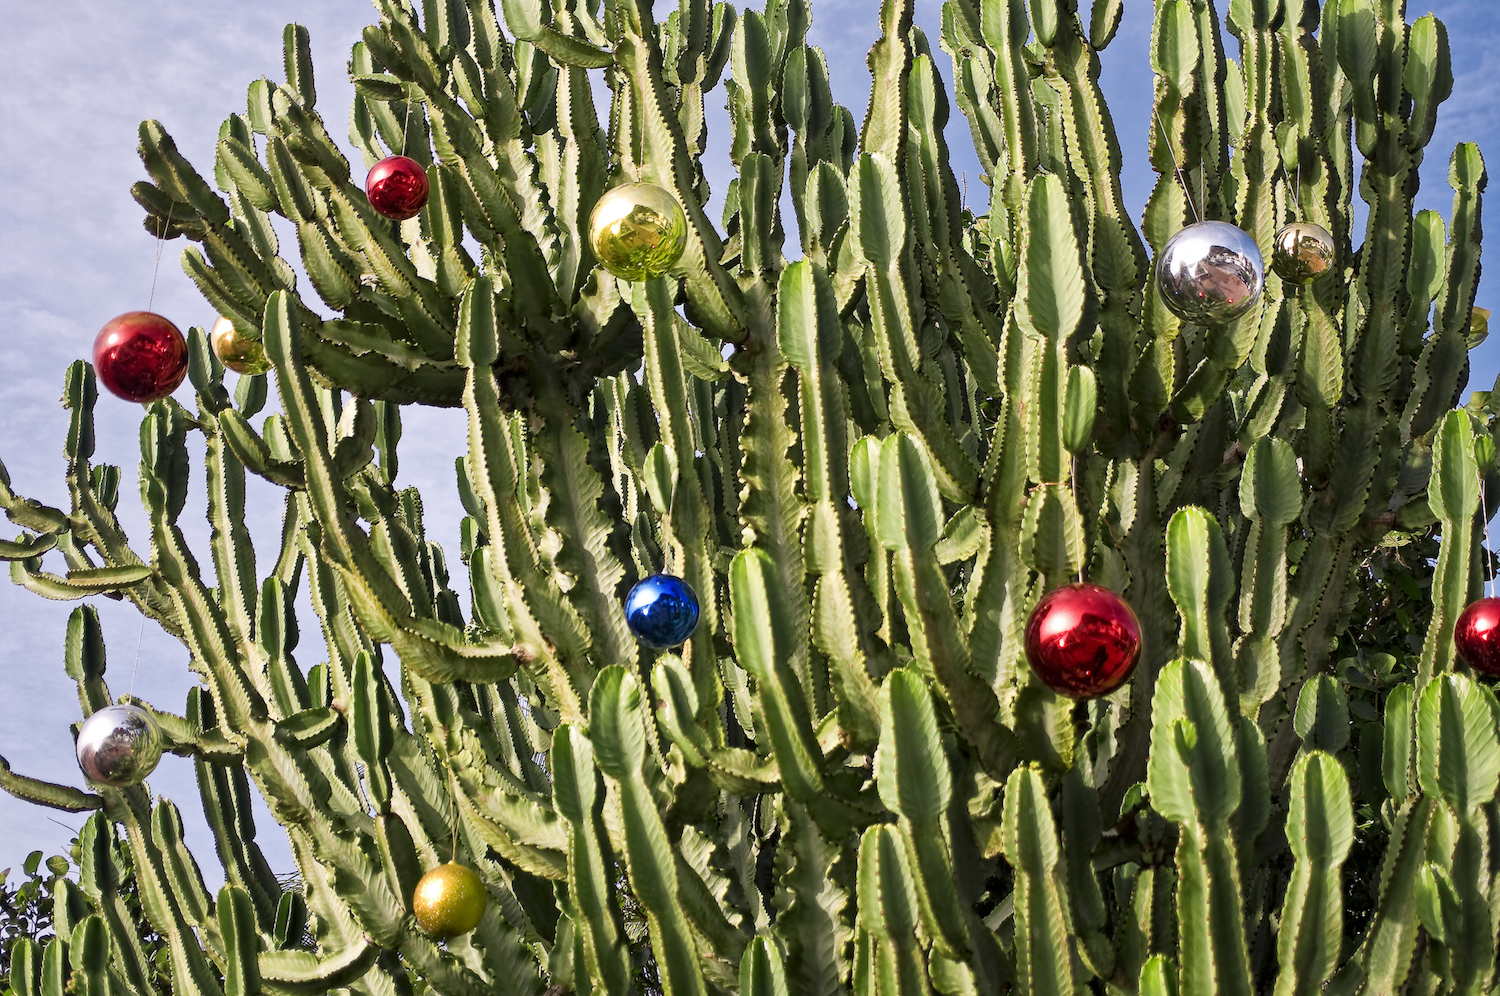 Cactus at la Gomera island with Christmas-tree decorations.